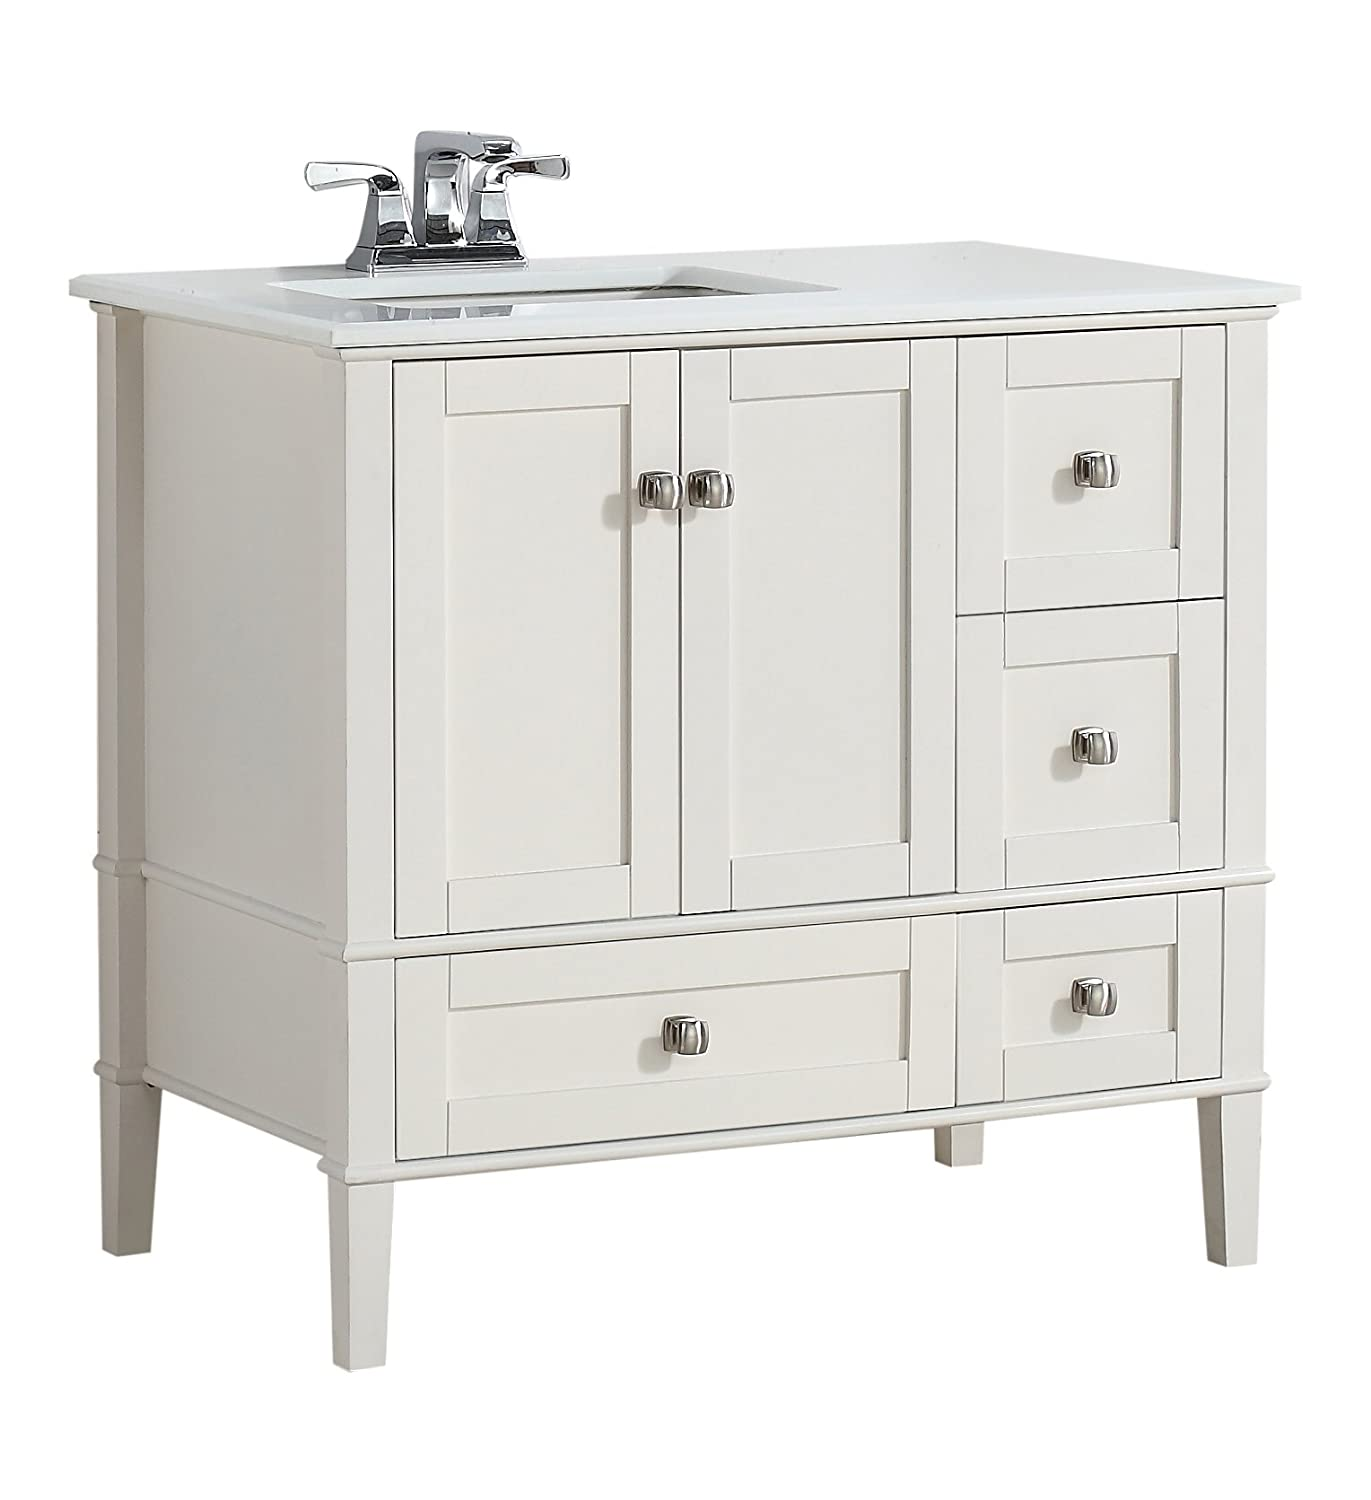 square single double by vessel bosconi white vanities sink vanity